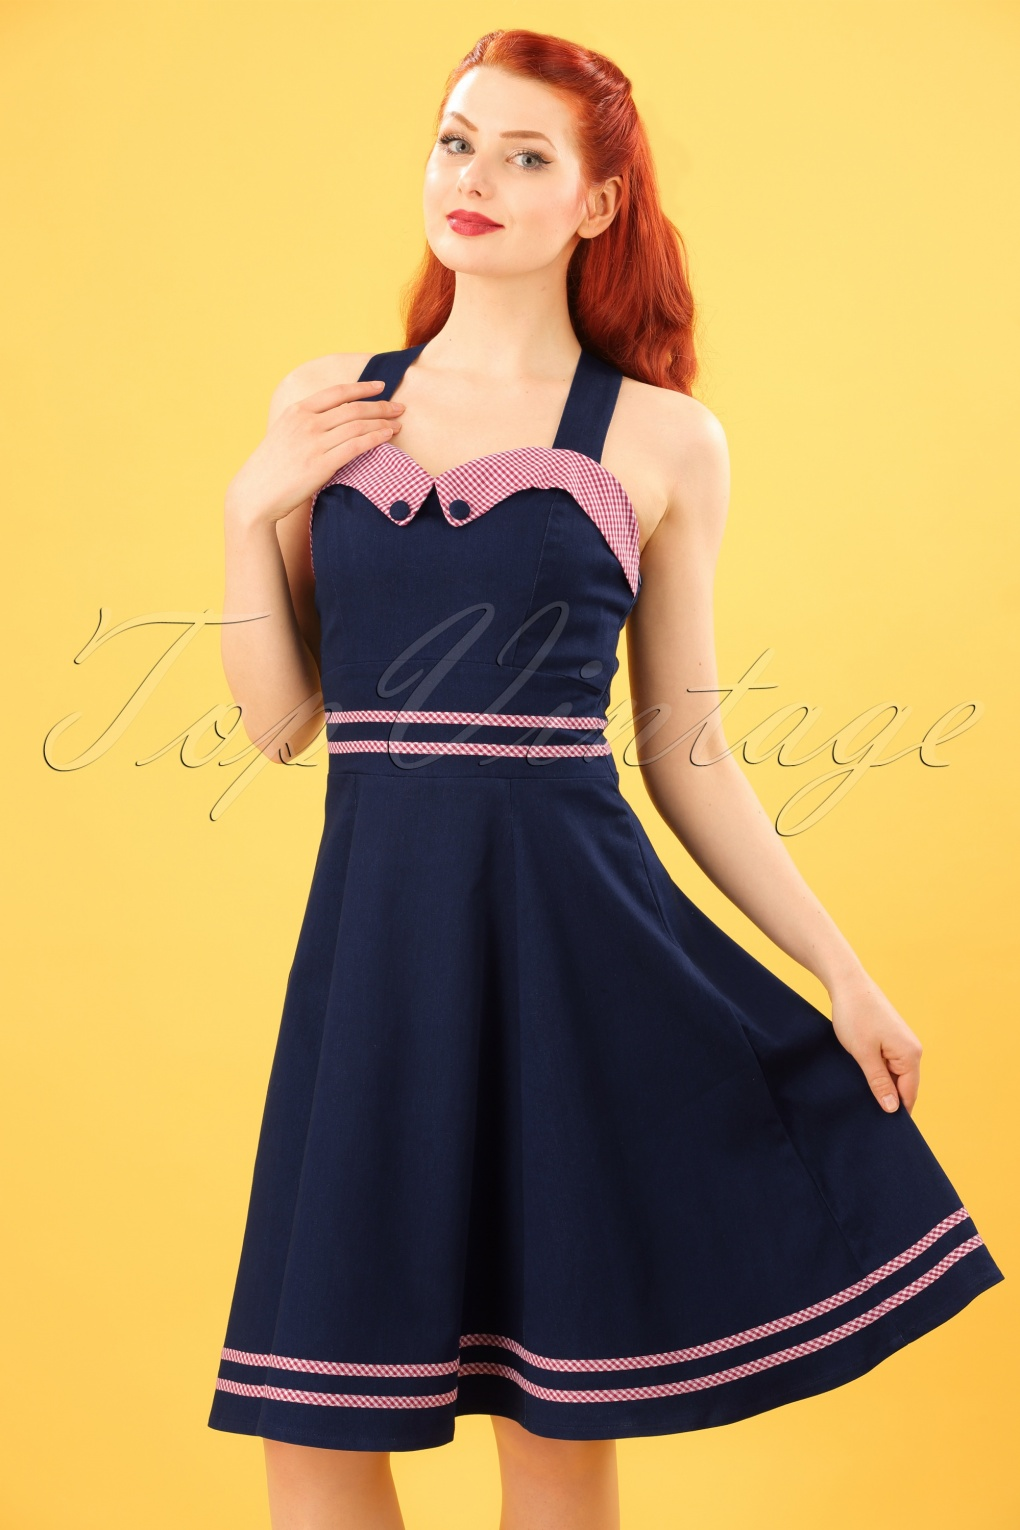 Pin Up Dresses | Pin Up Clothing 50s Jadore Halter Dress in Navy £52.57 AT vintagedancer.com